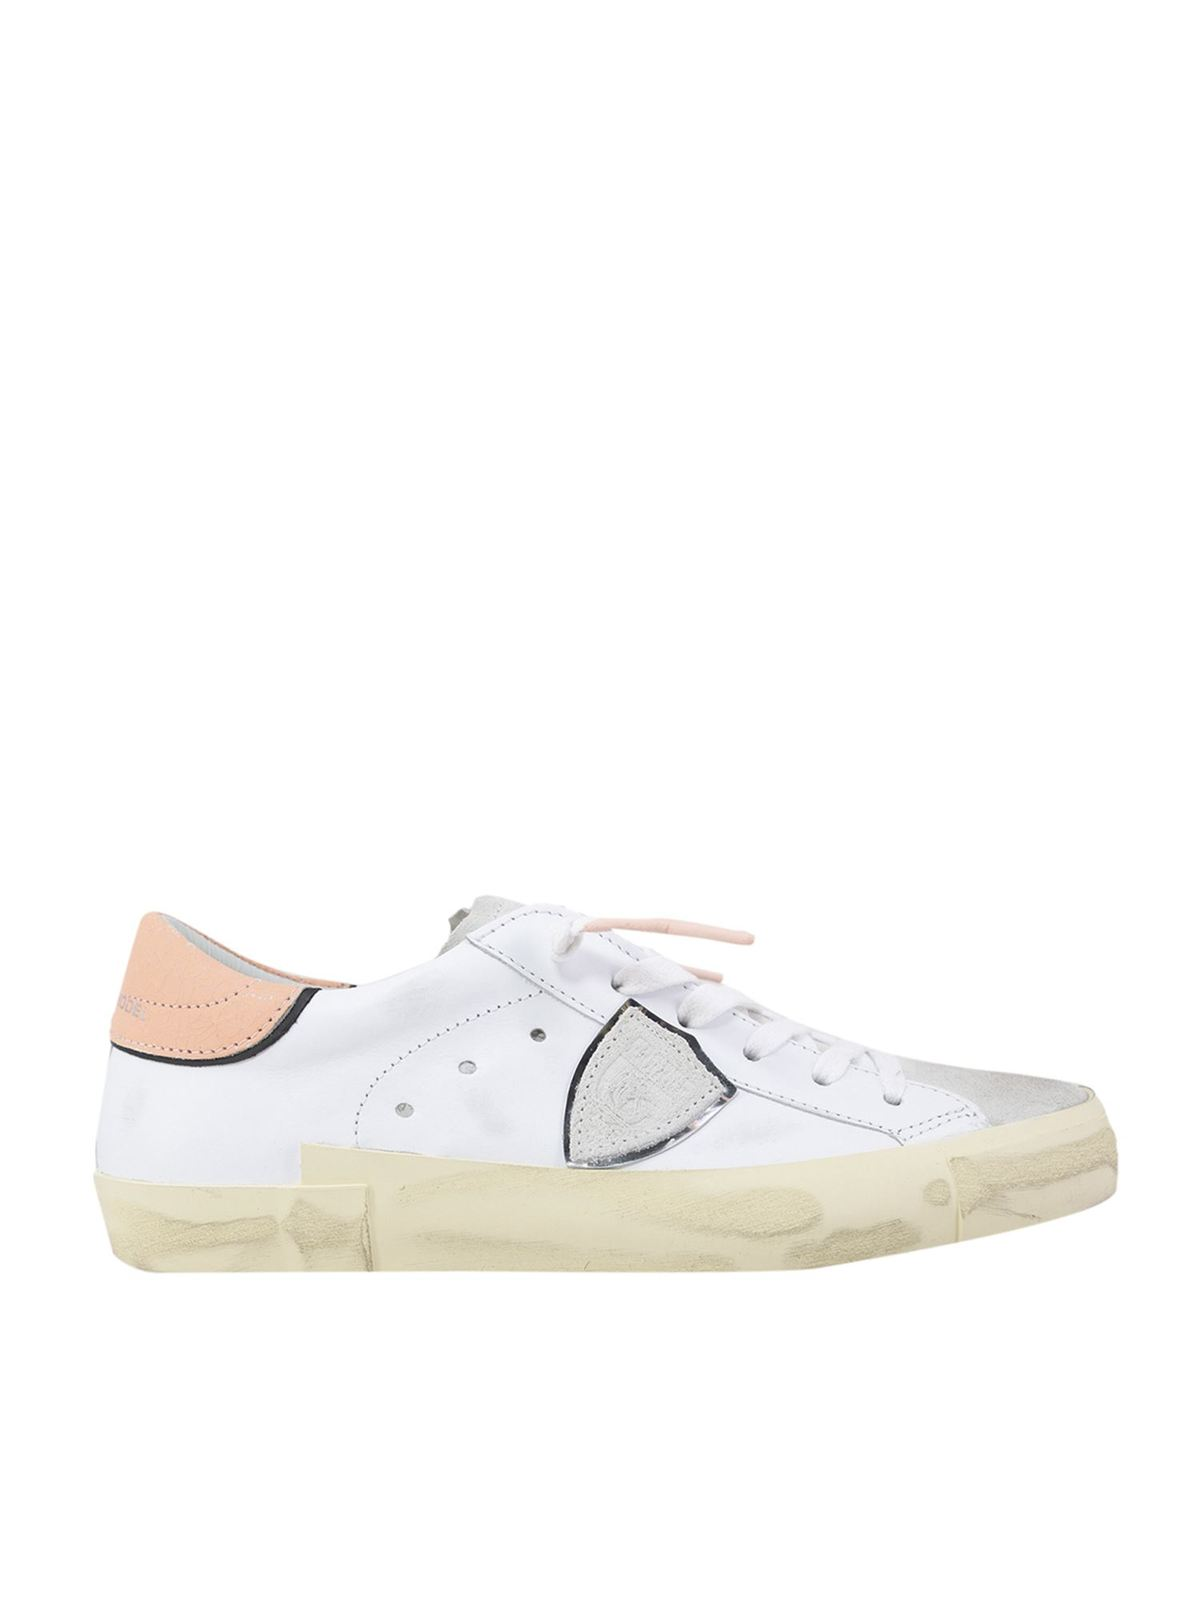 Philippe Model Low tops PRSX LOW SNEAKERS IN WHITE AND PINK